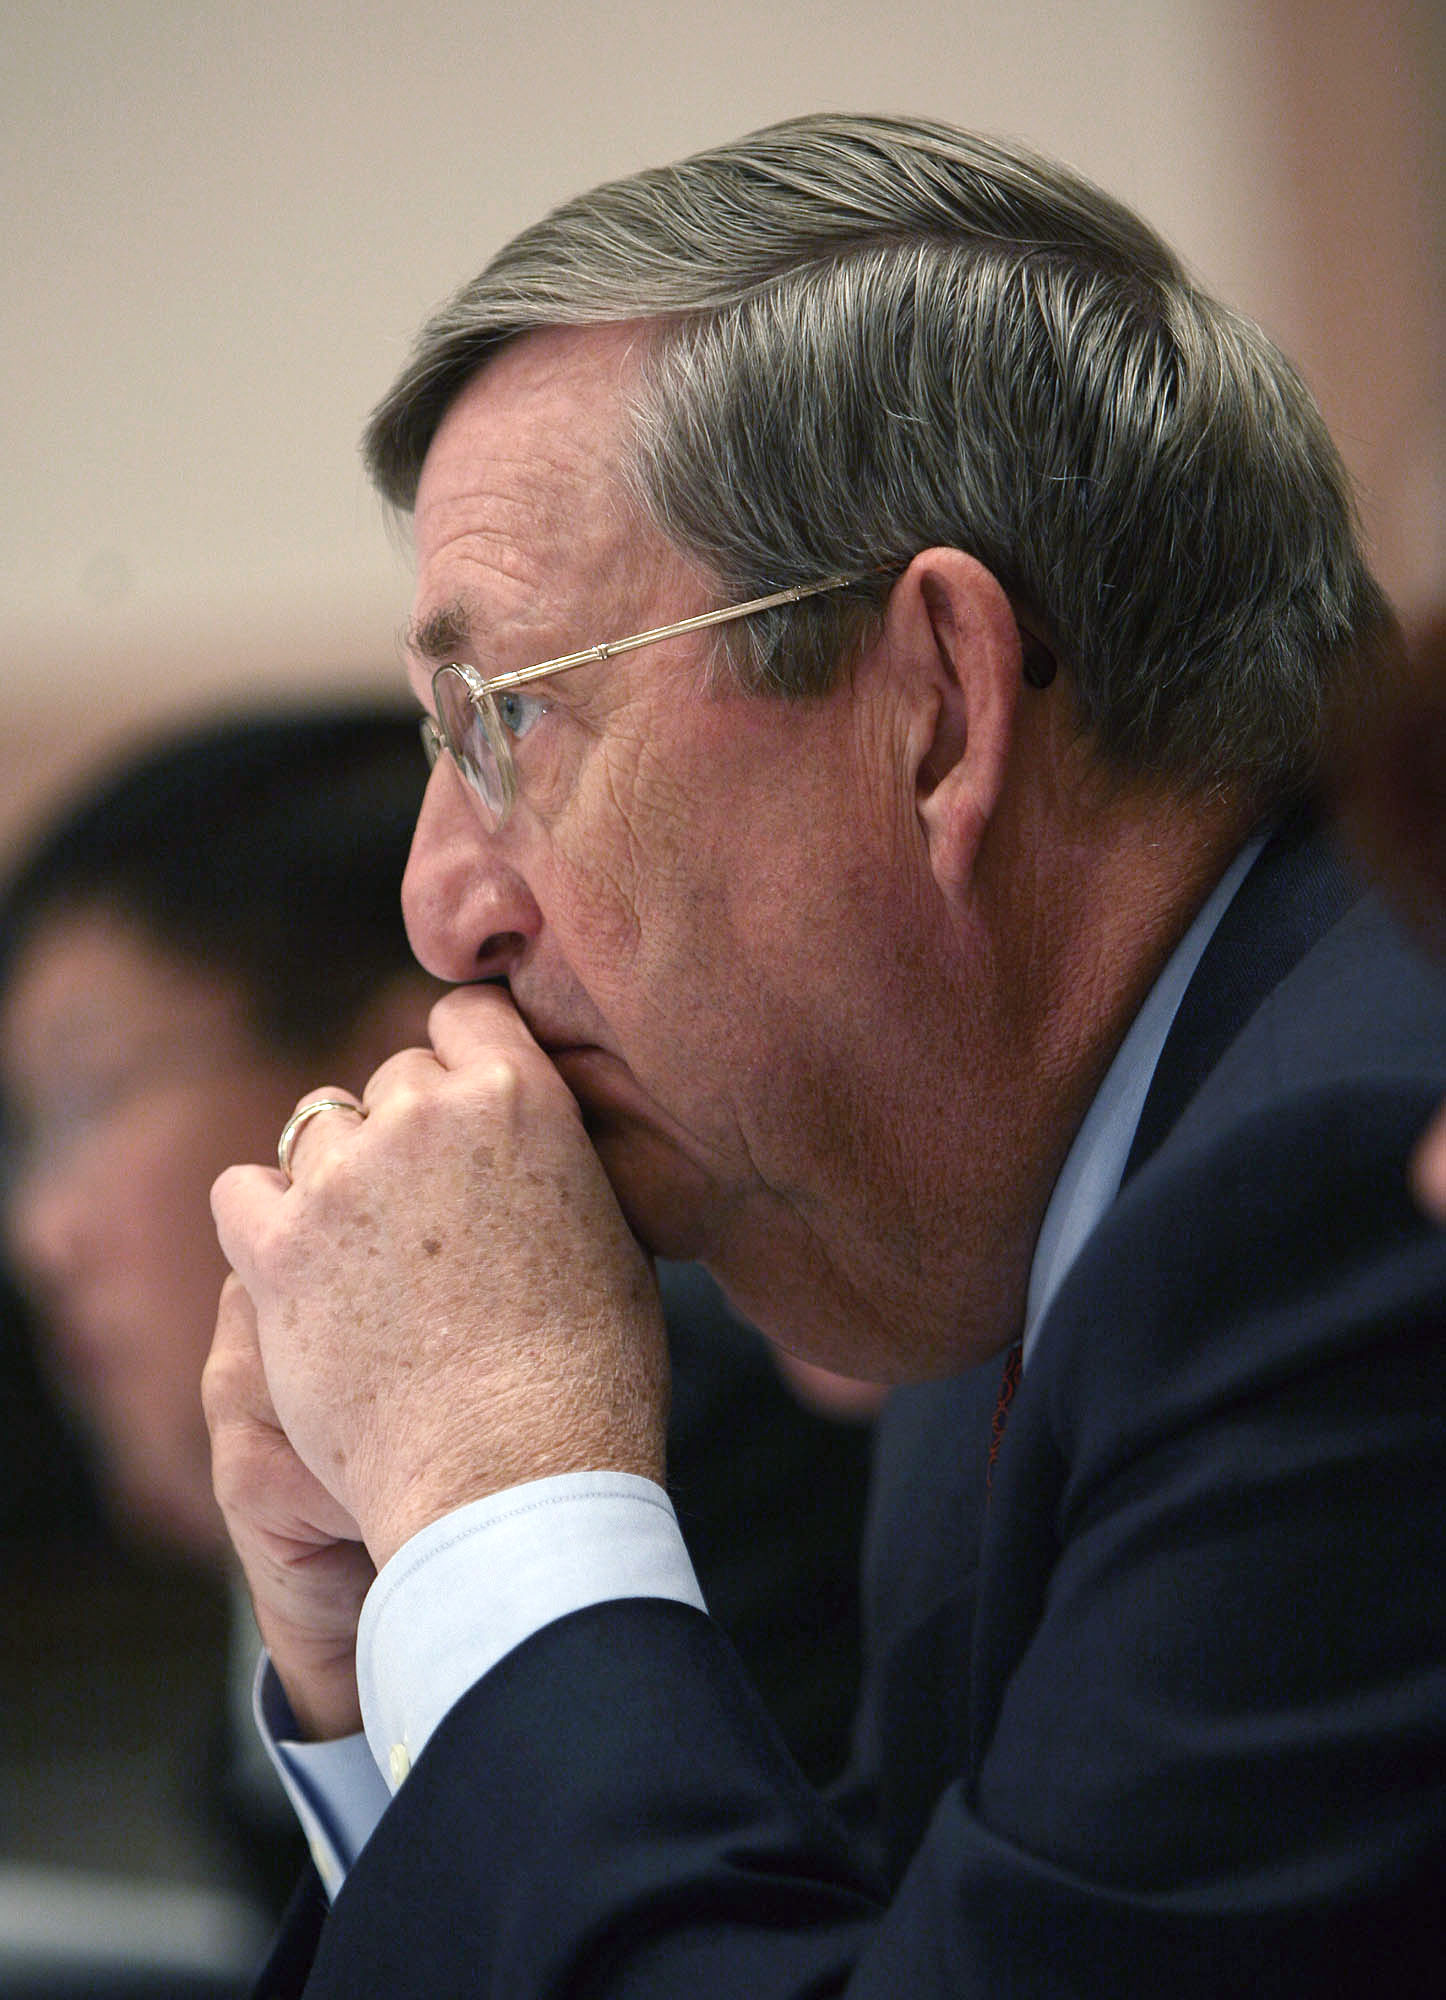 Lee R. Raymond, then the chief executive of Exxon Mobil Corp., listens during testimony at the President's Export Council in 2005.